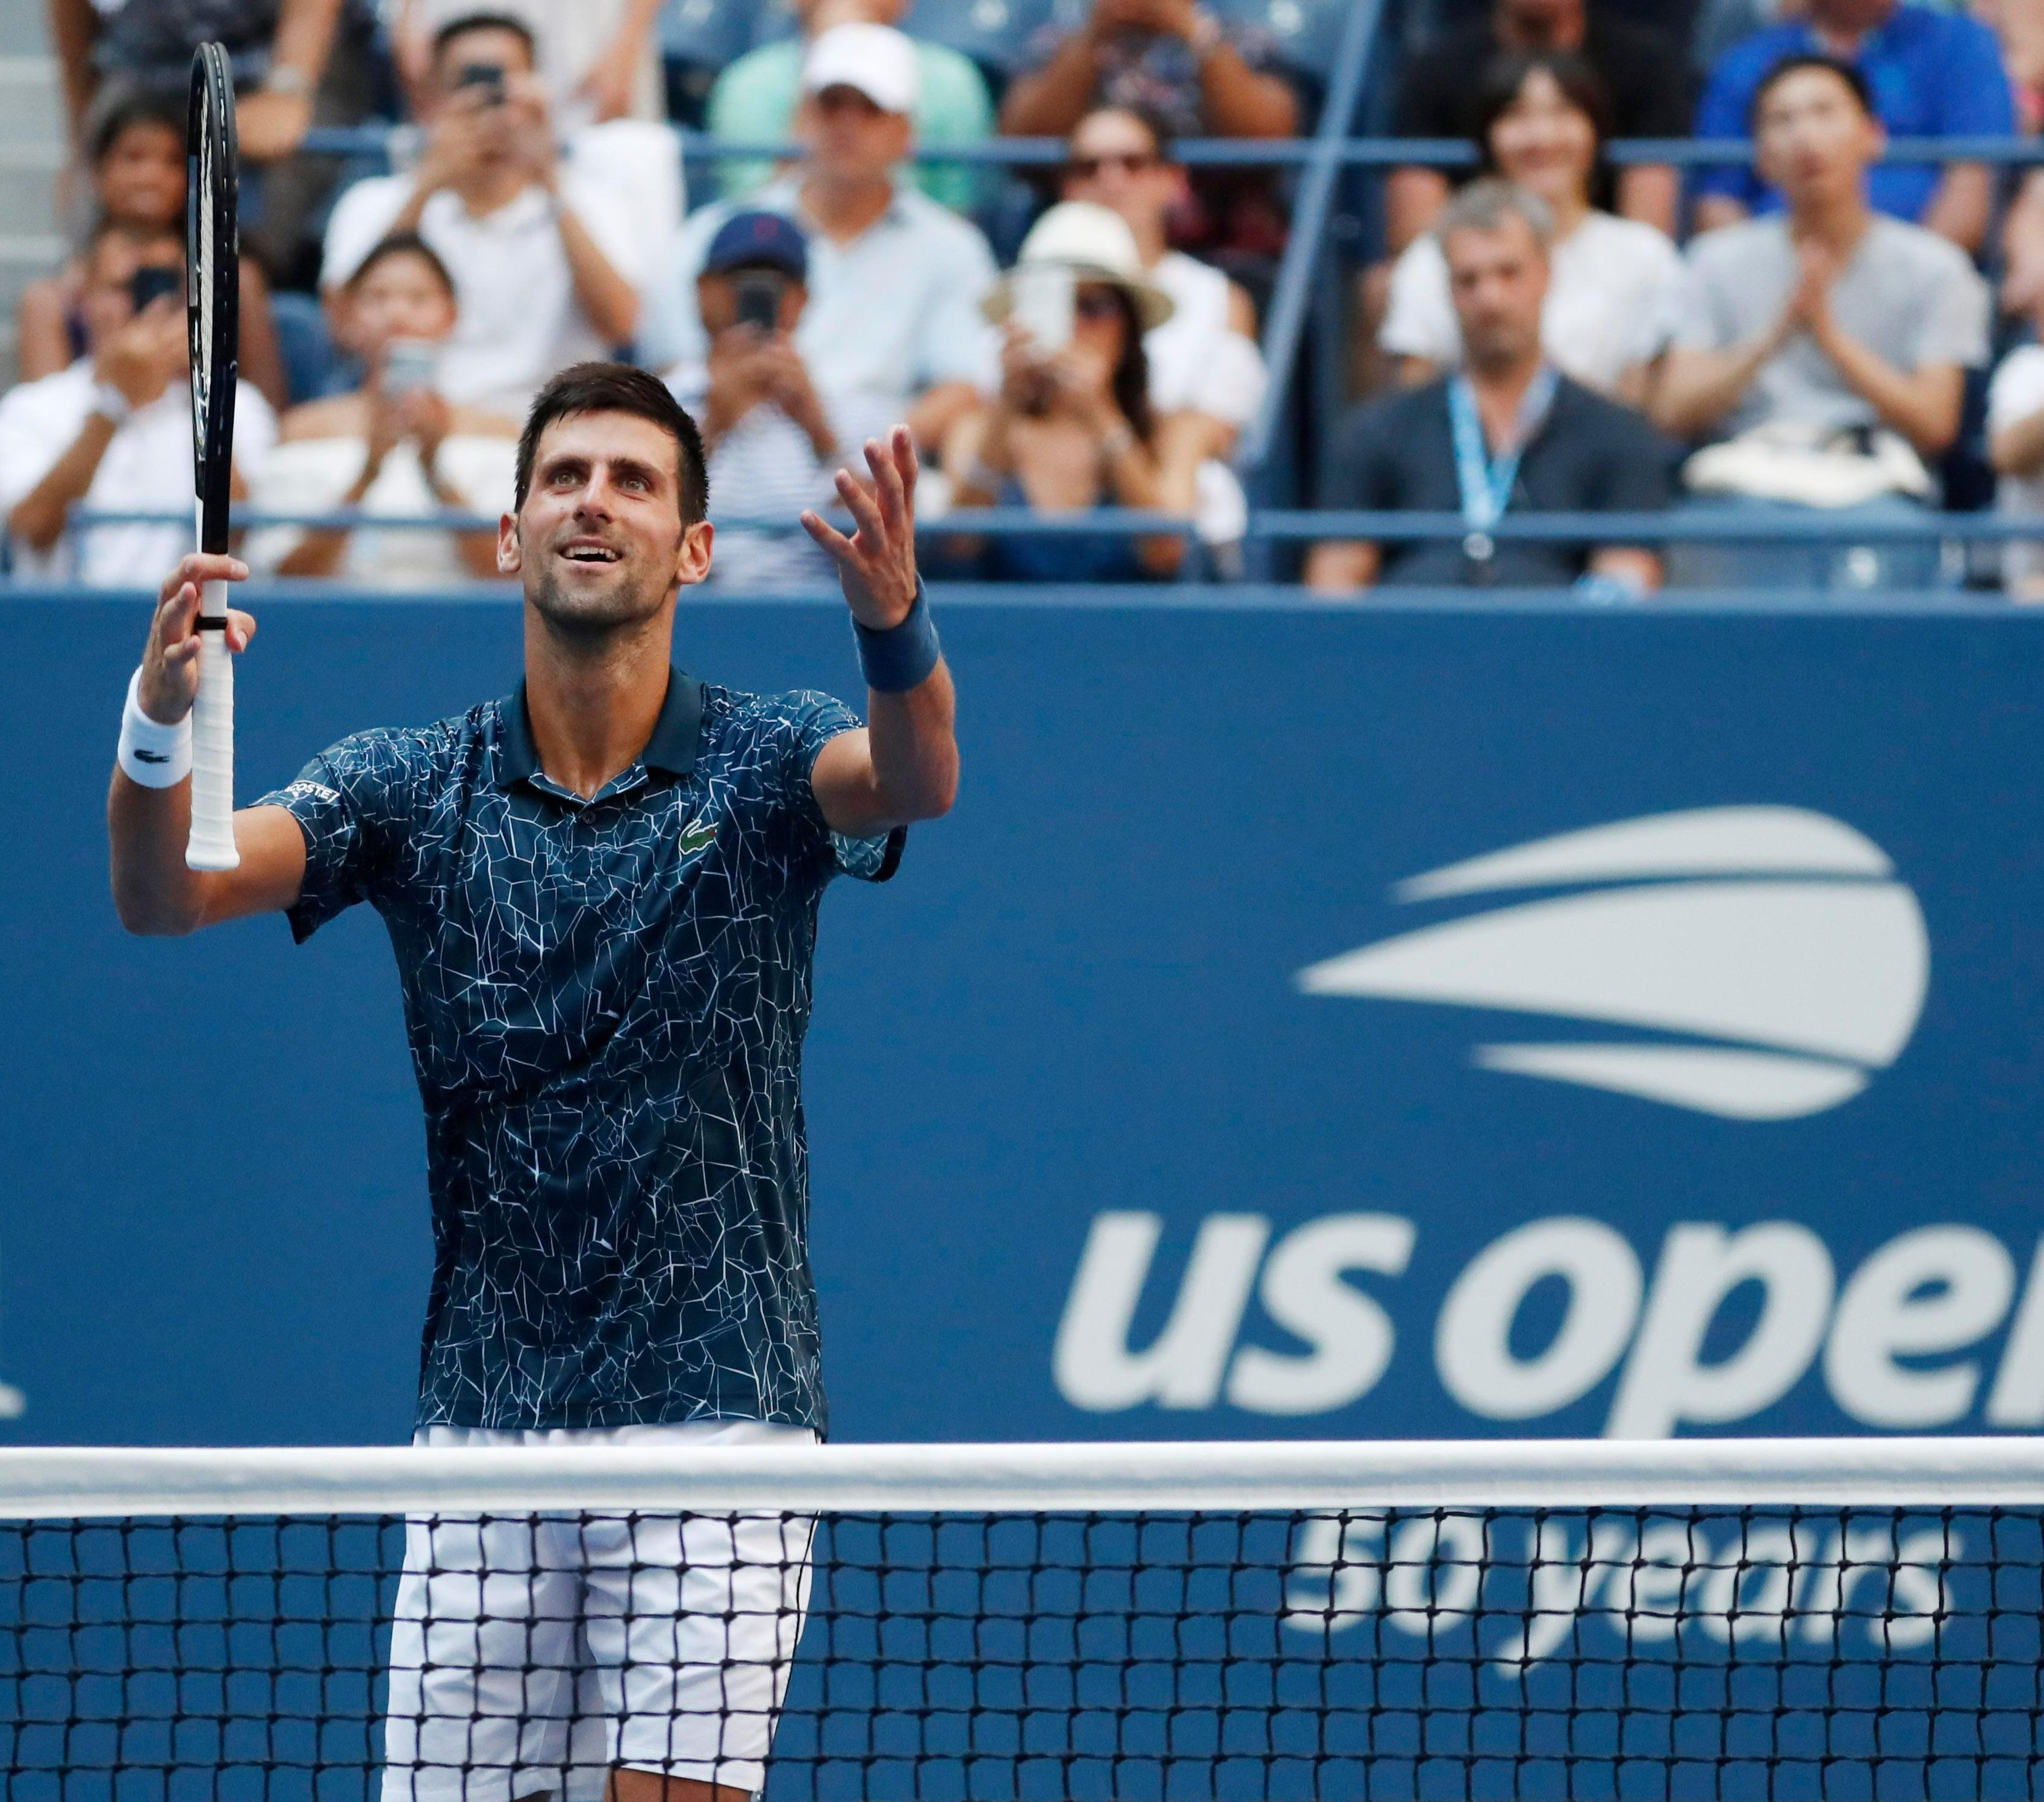 Djokovic's relief was clear to see as he celebrated the victory with the supporters